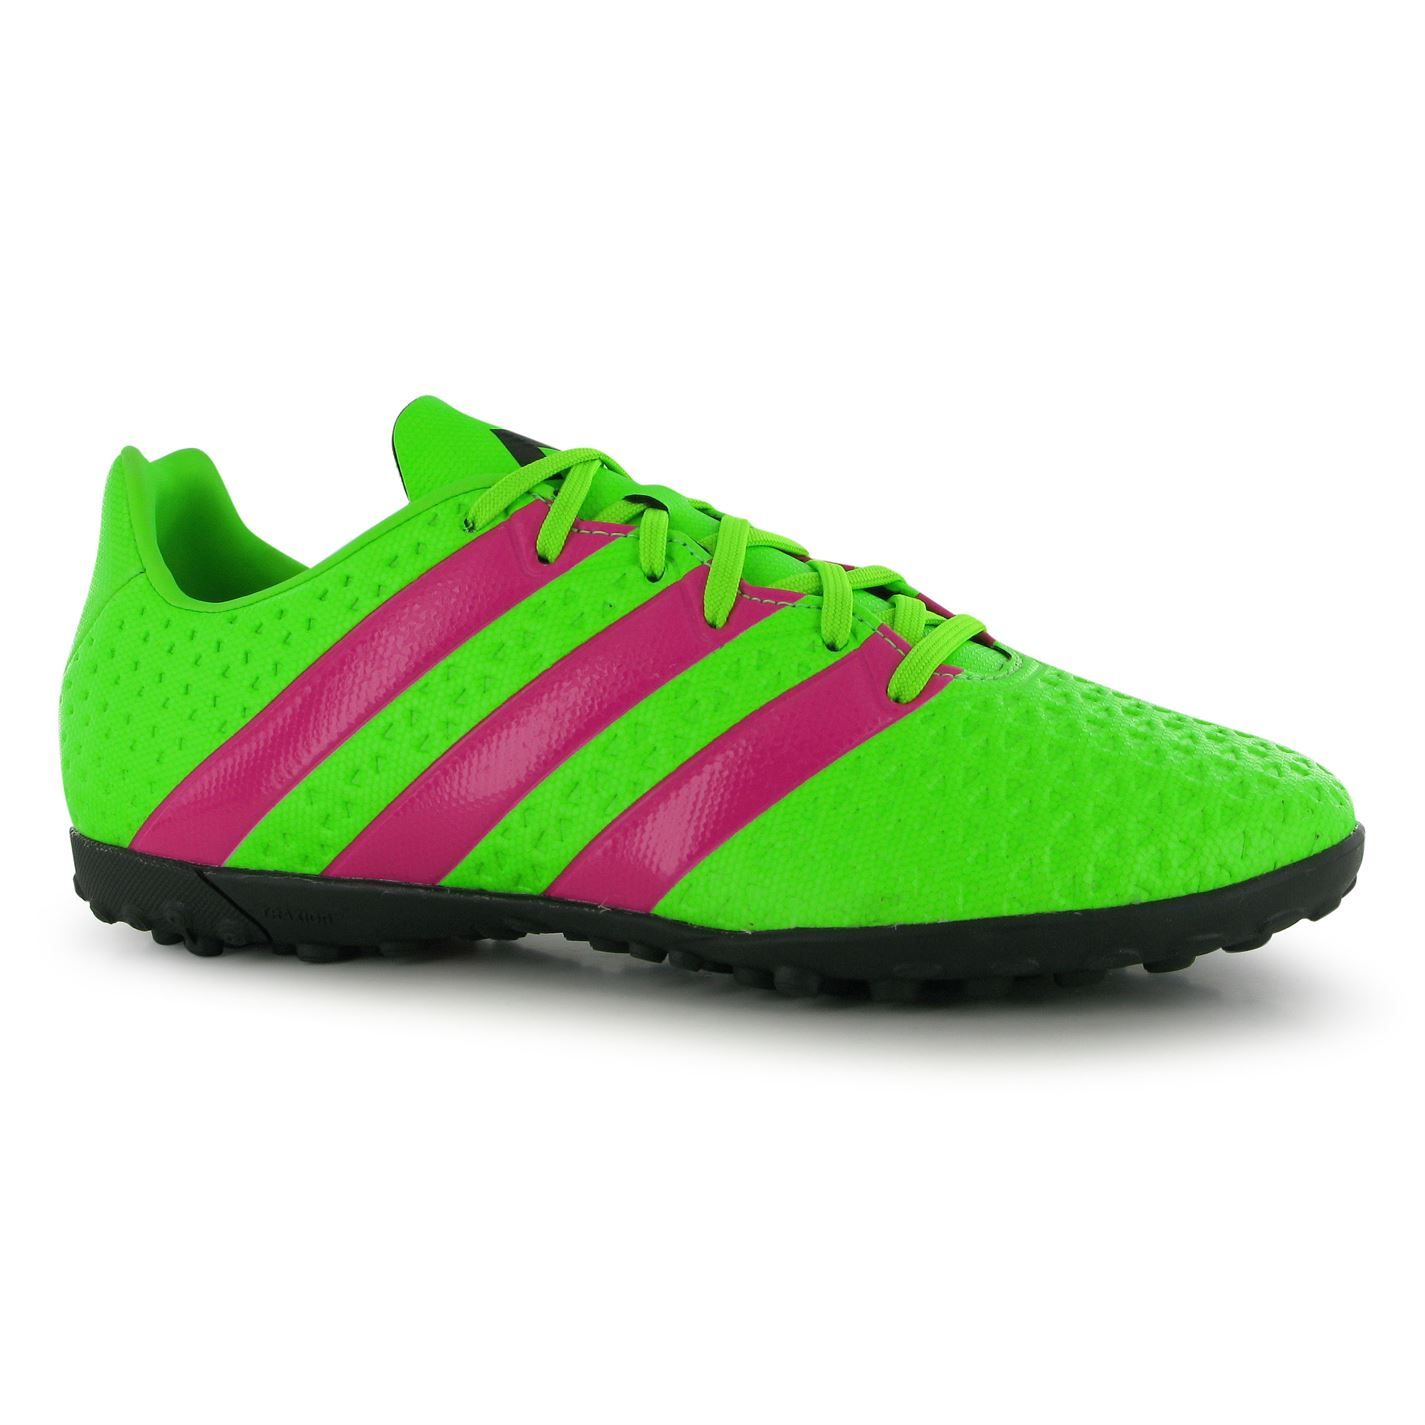 Ace 16.4 Mens Astro Turf Trainers